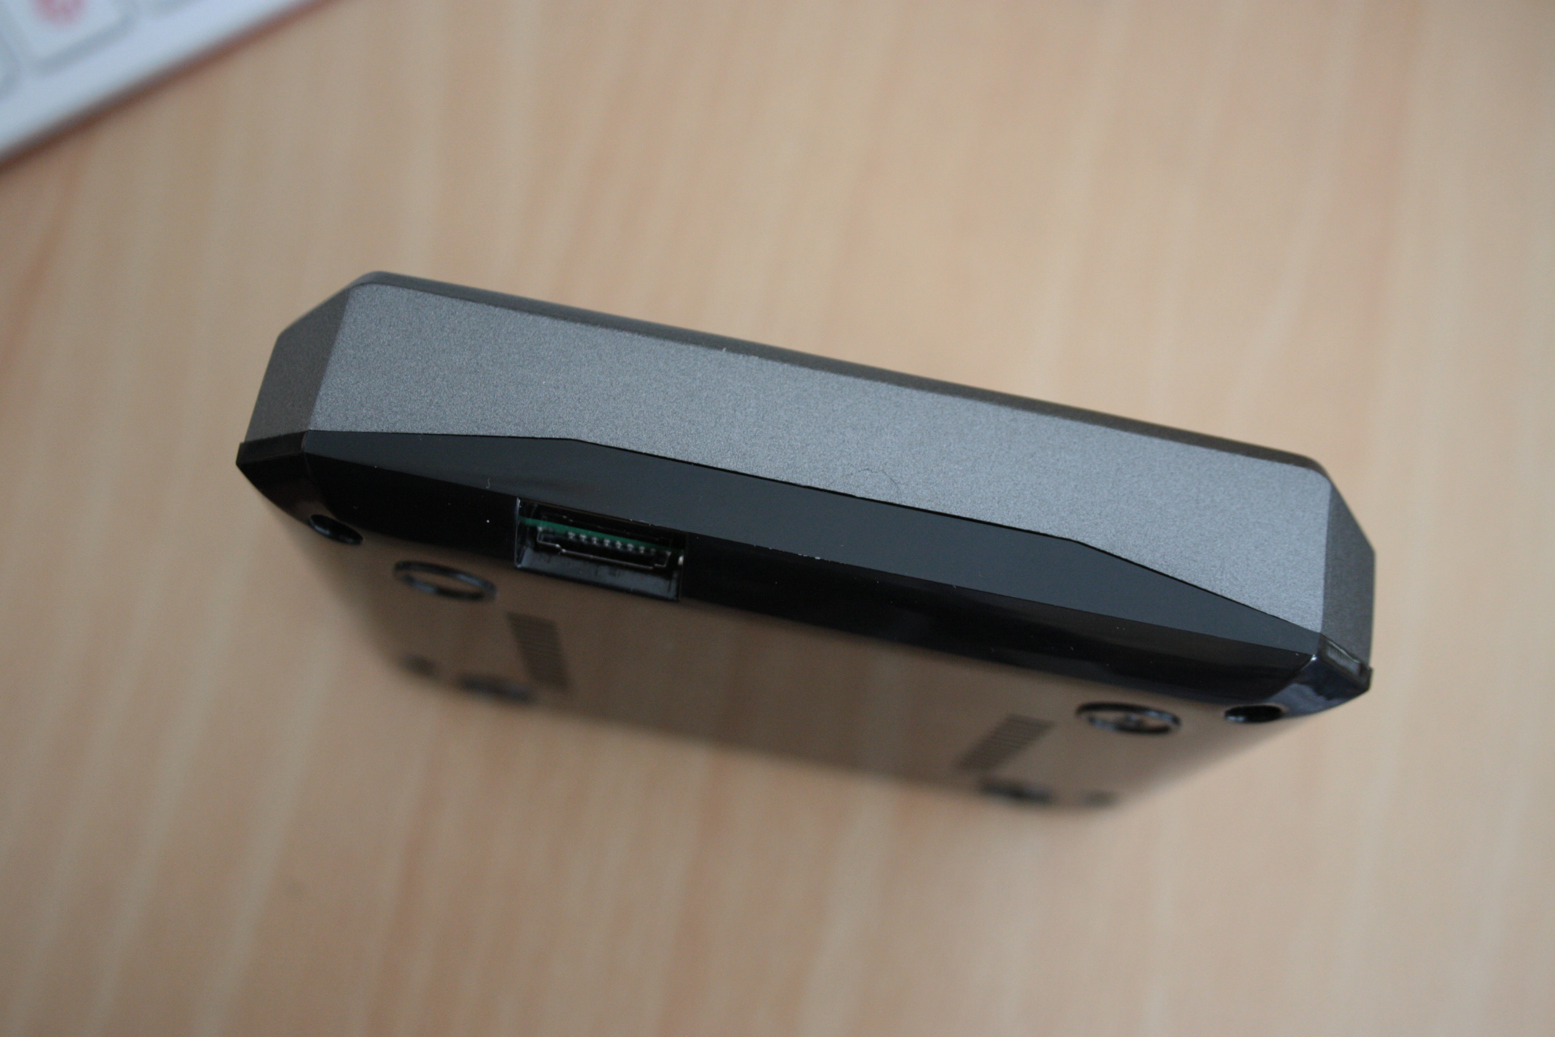 The front of the case, showing the SD card access